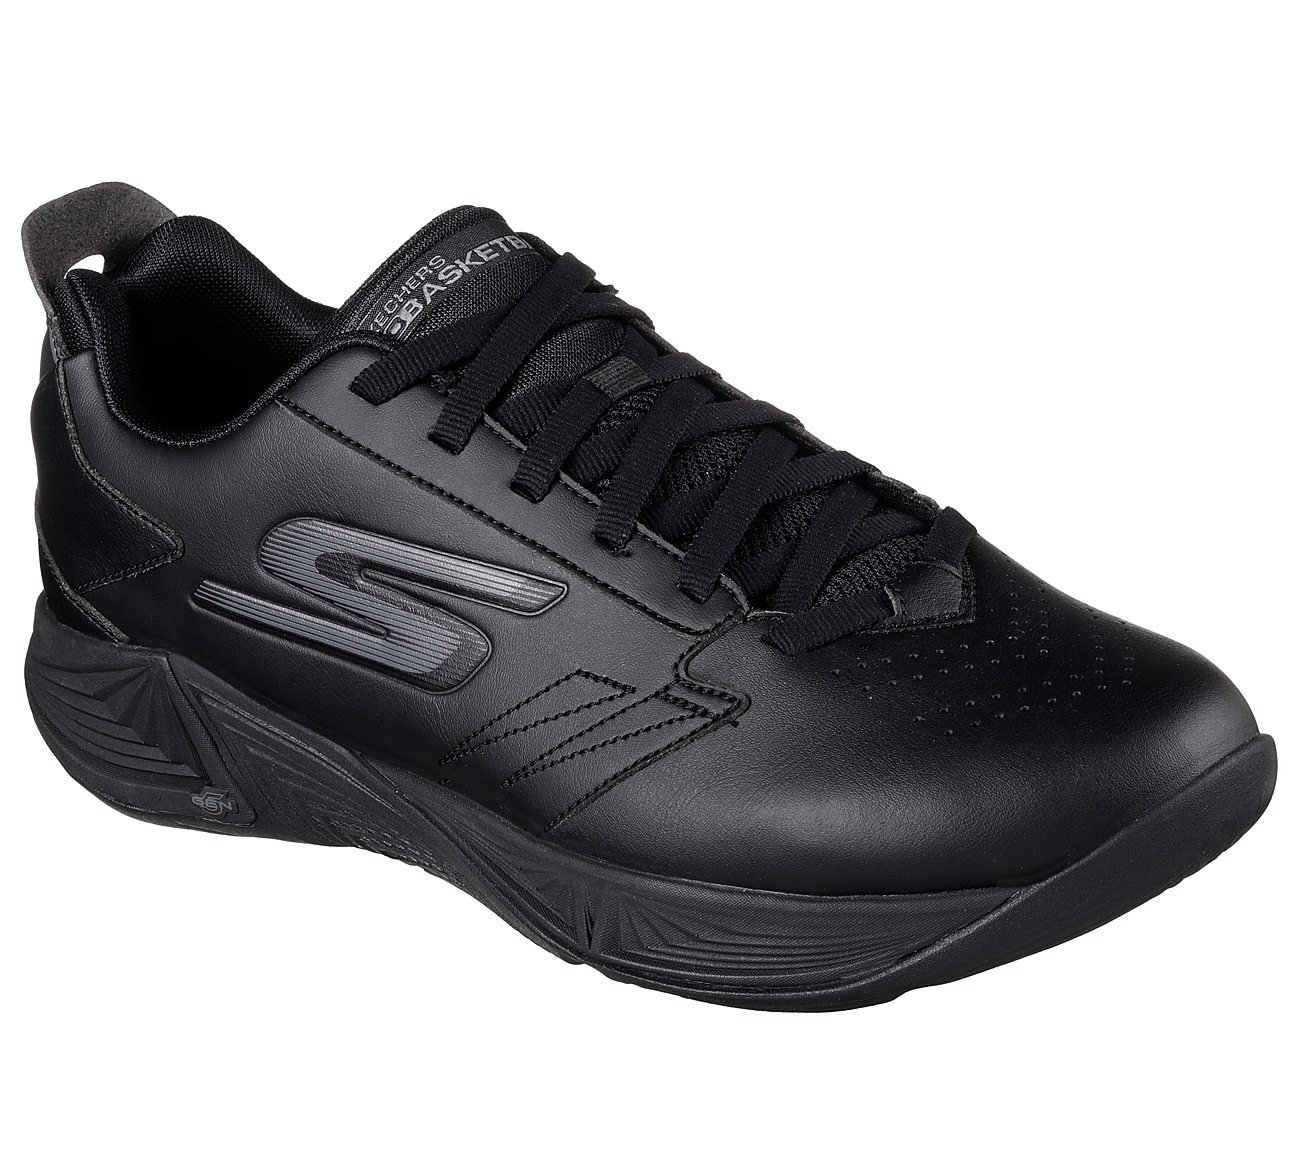 d81fad917b44 Galleon - Skechers Men s Torch - Lt Black Ankle-High Basketball Shoe 12M